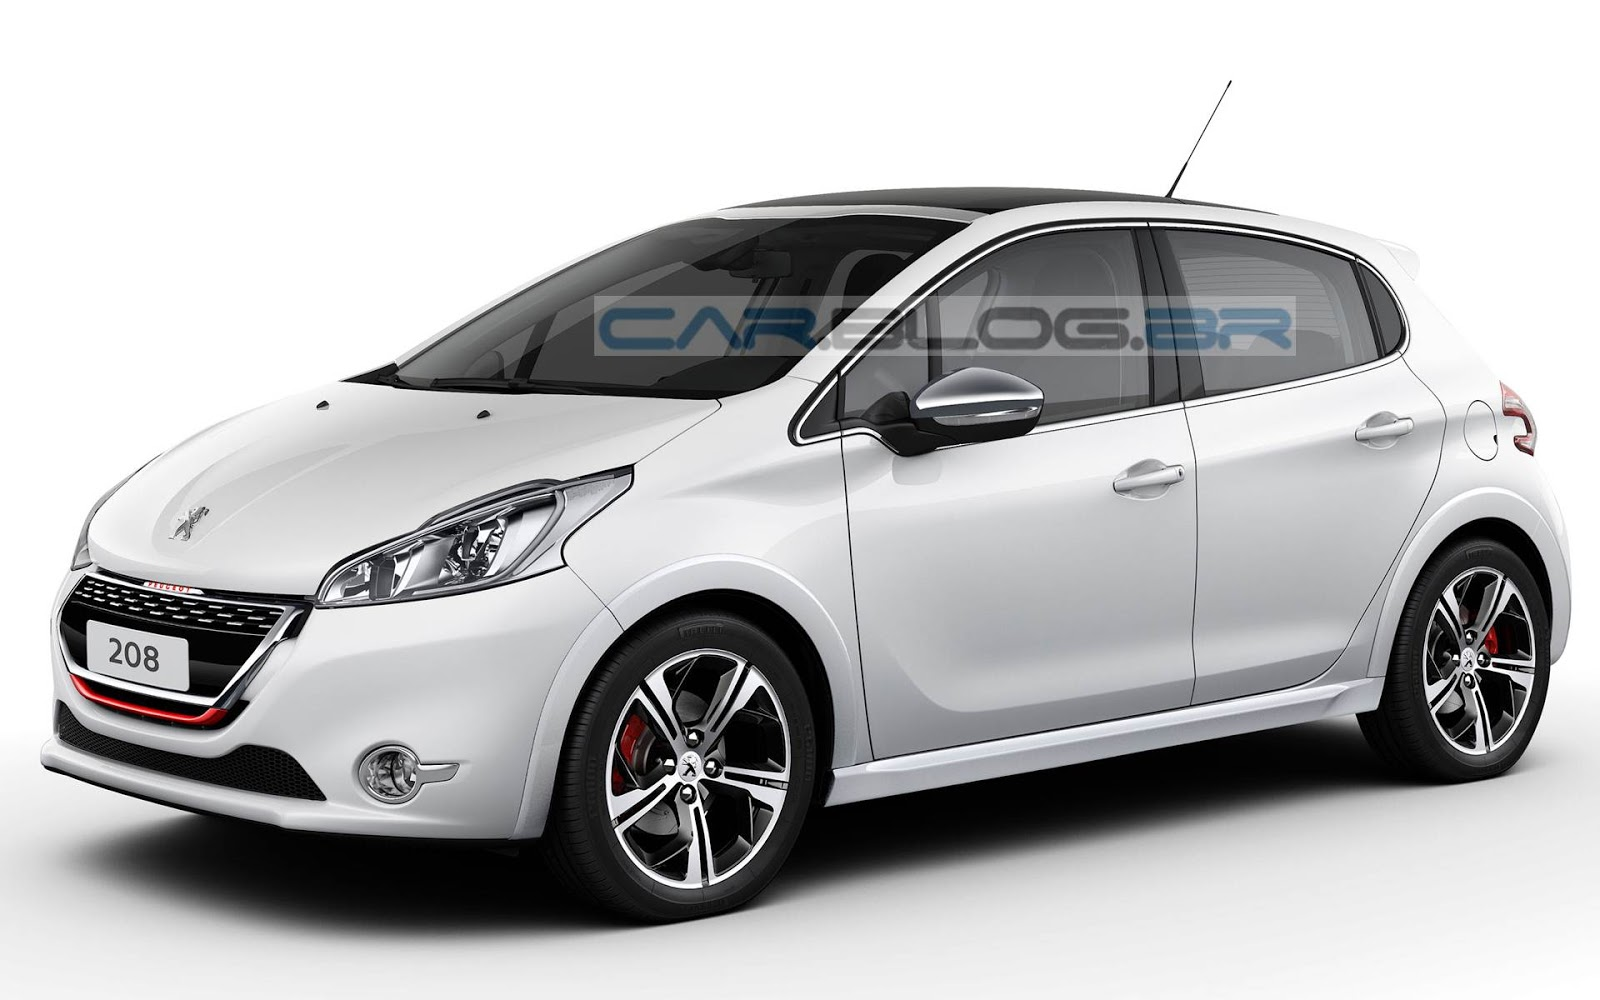 2018 peugeot 208 gti car photos catalog 2018. Black Bedroom Furniture Sets. Home Design Ideas